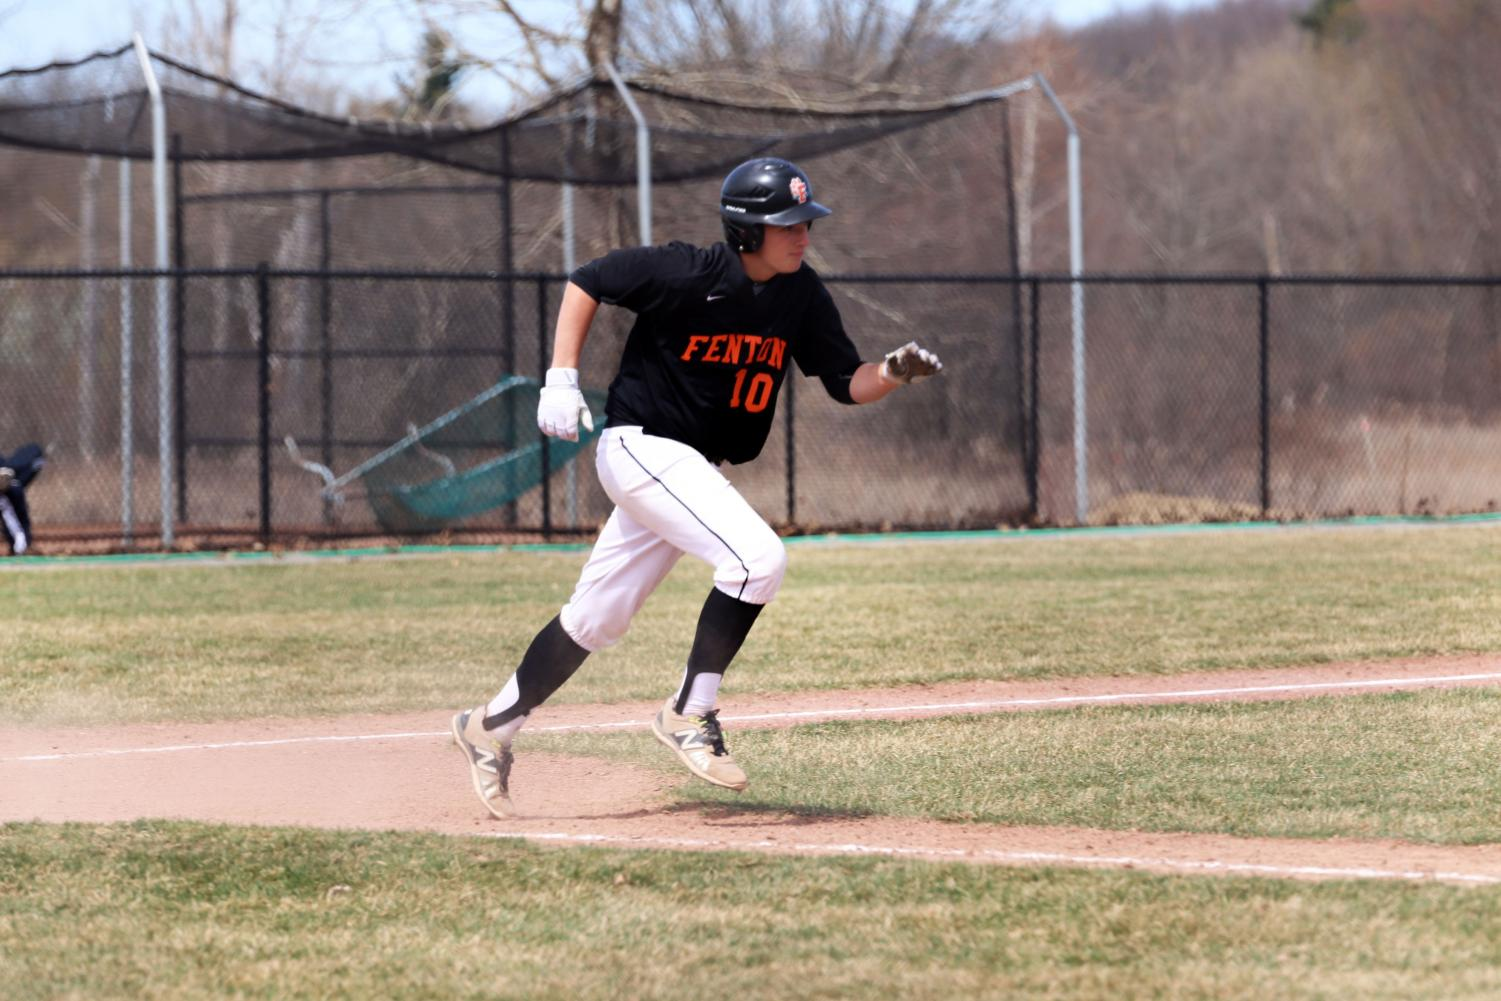 Sophomore Gannon Welch (10) runs to first base after hitting the ball. Fenton JV baseball played against Hartland on April 13th.